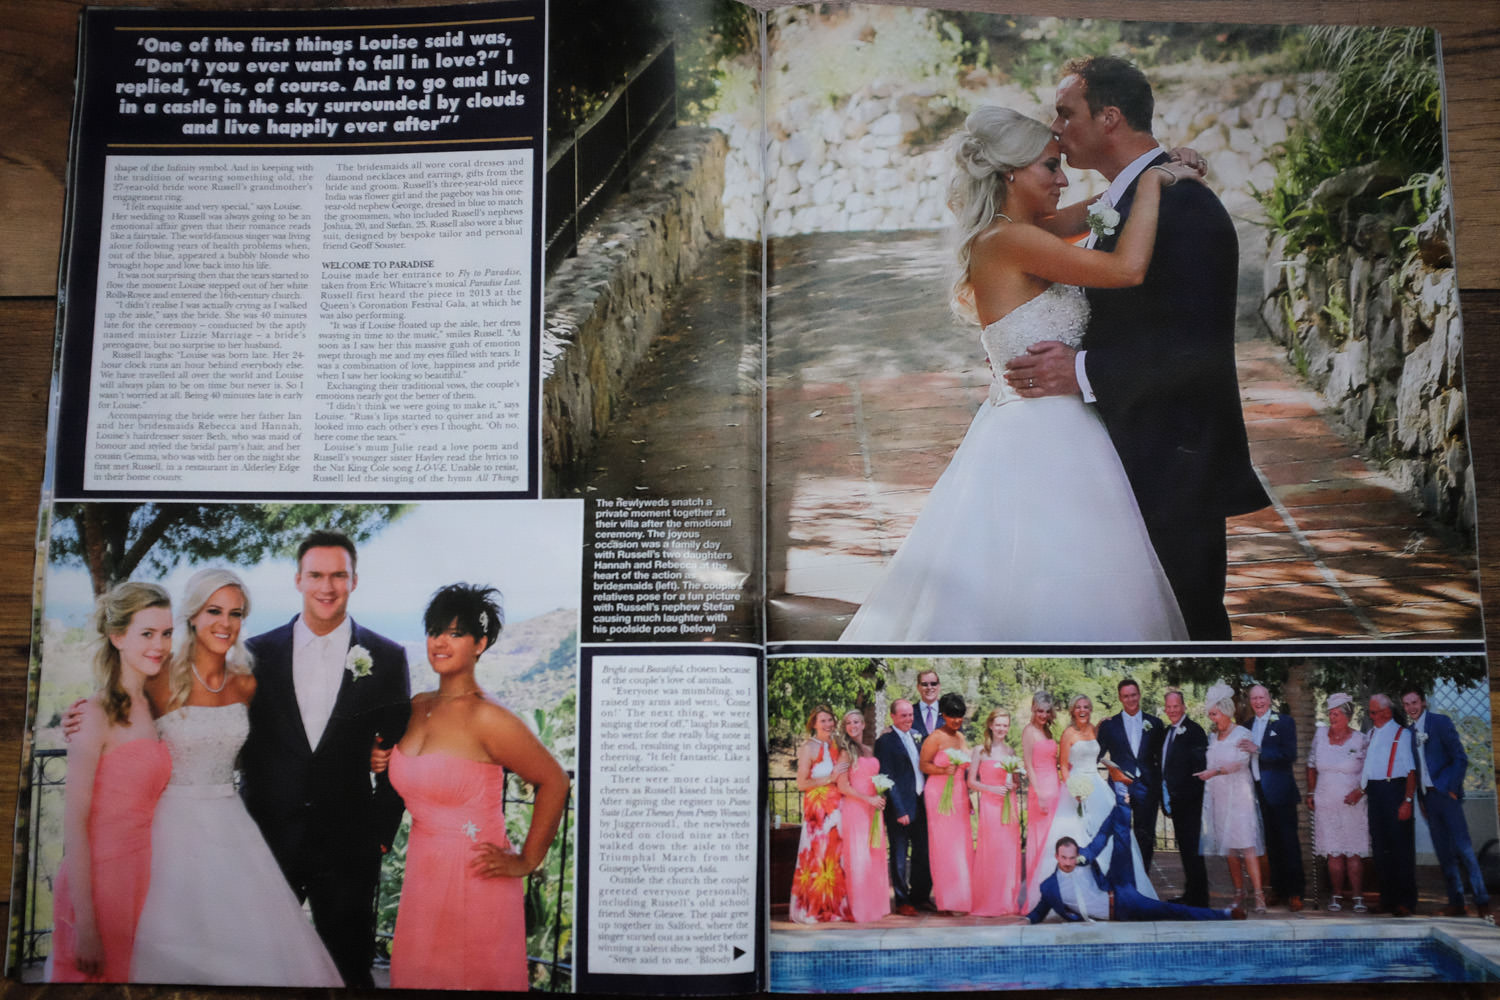 EXCLUSIVE FAIRYTALE CELEBRITY WEDDING IN HELLO! MAGAZINE | Destination wedding | celebrity wedding